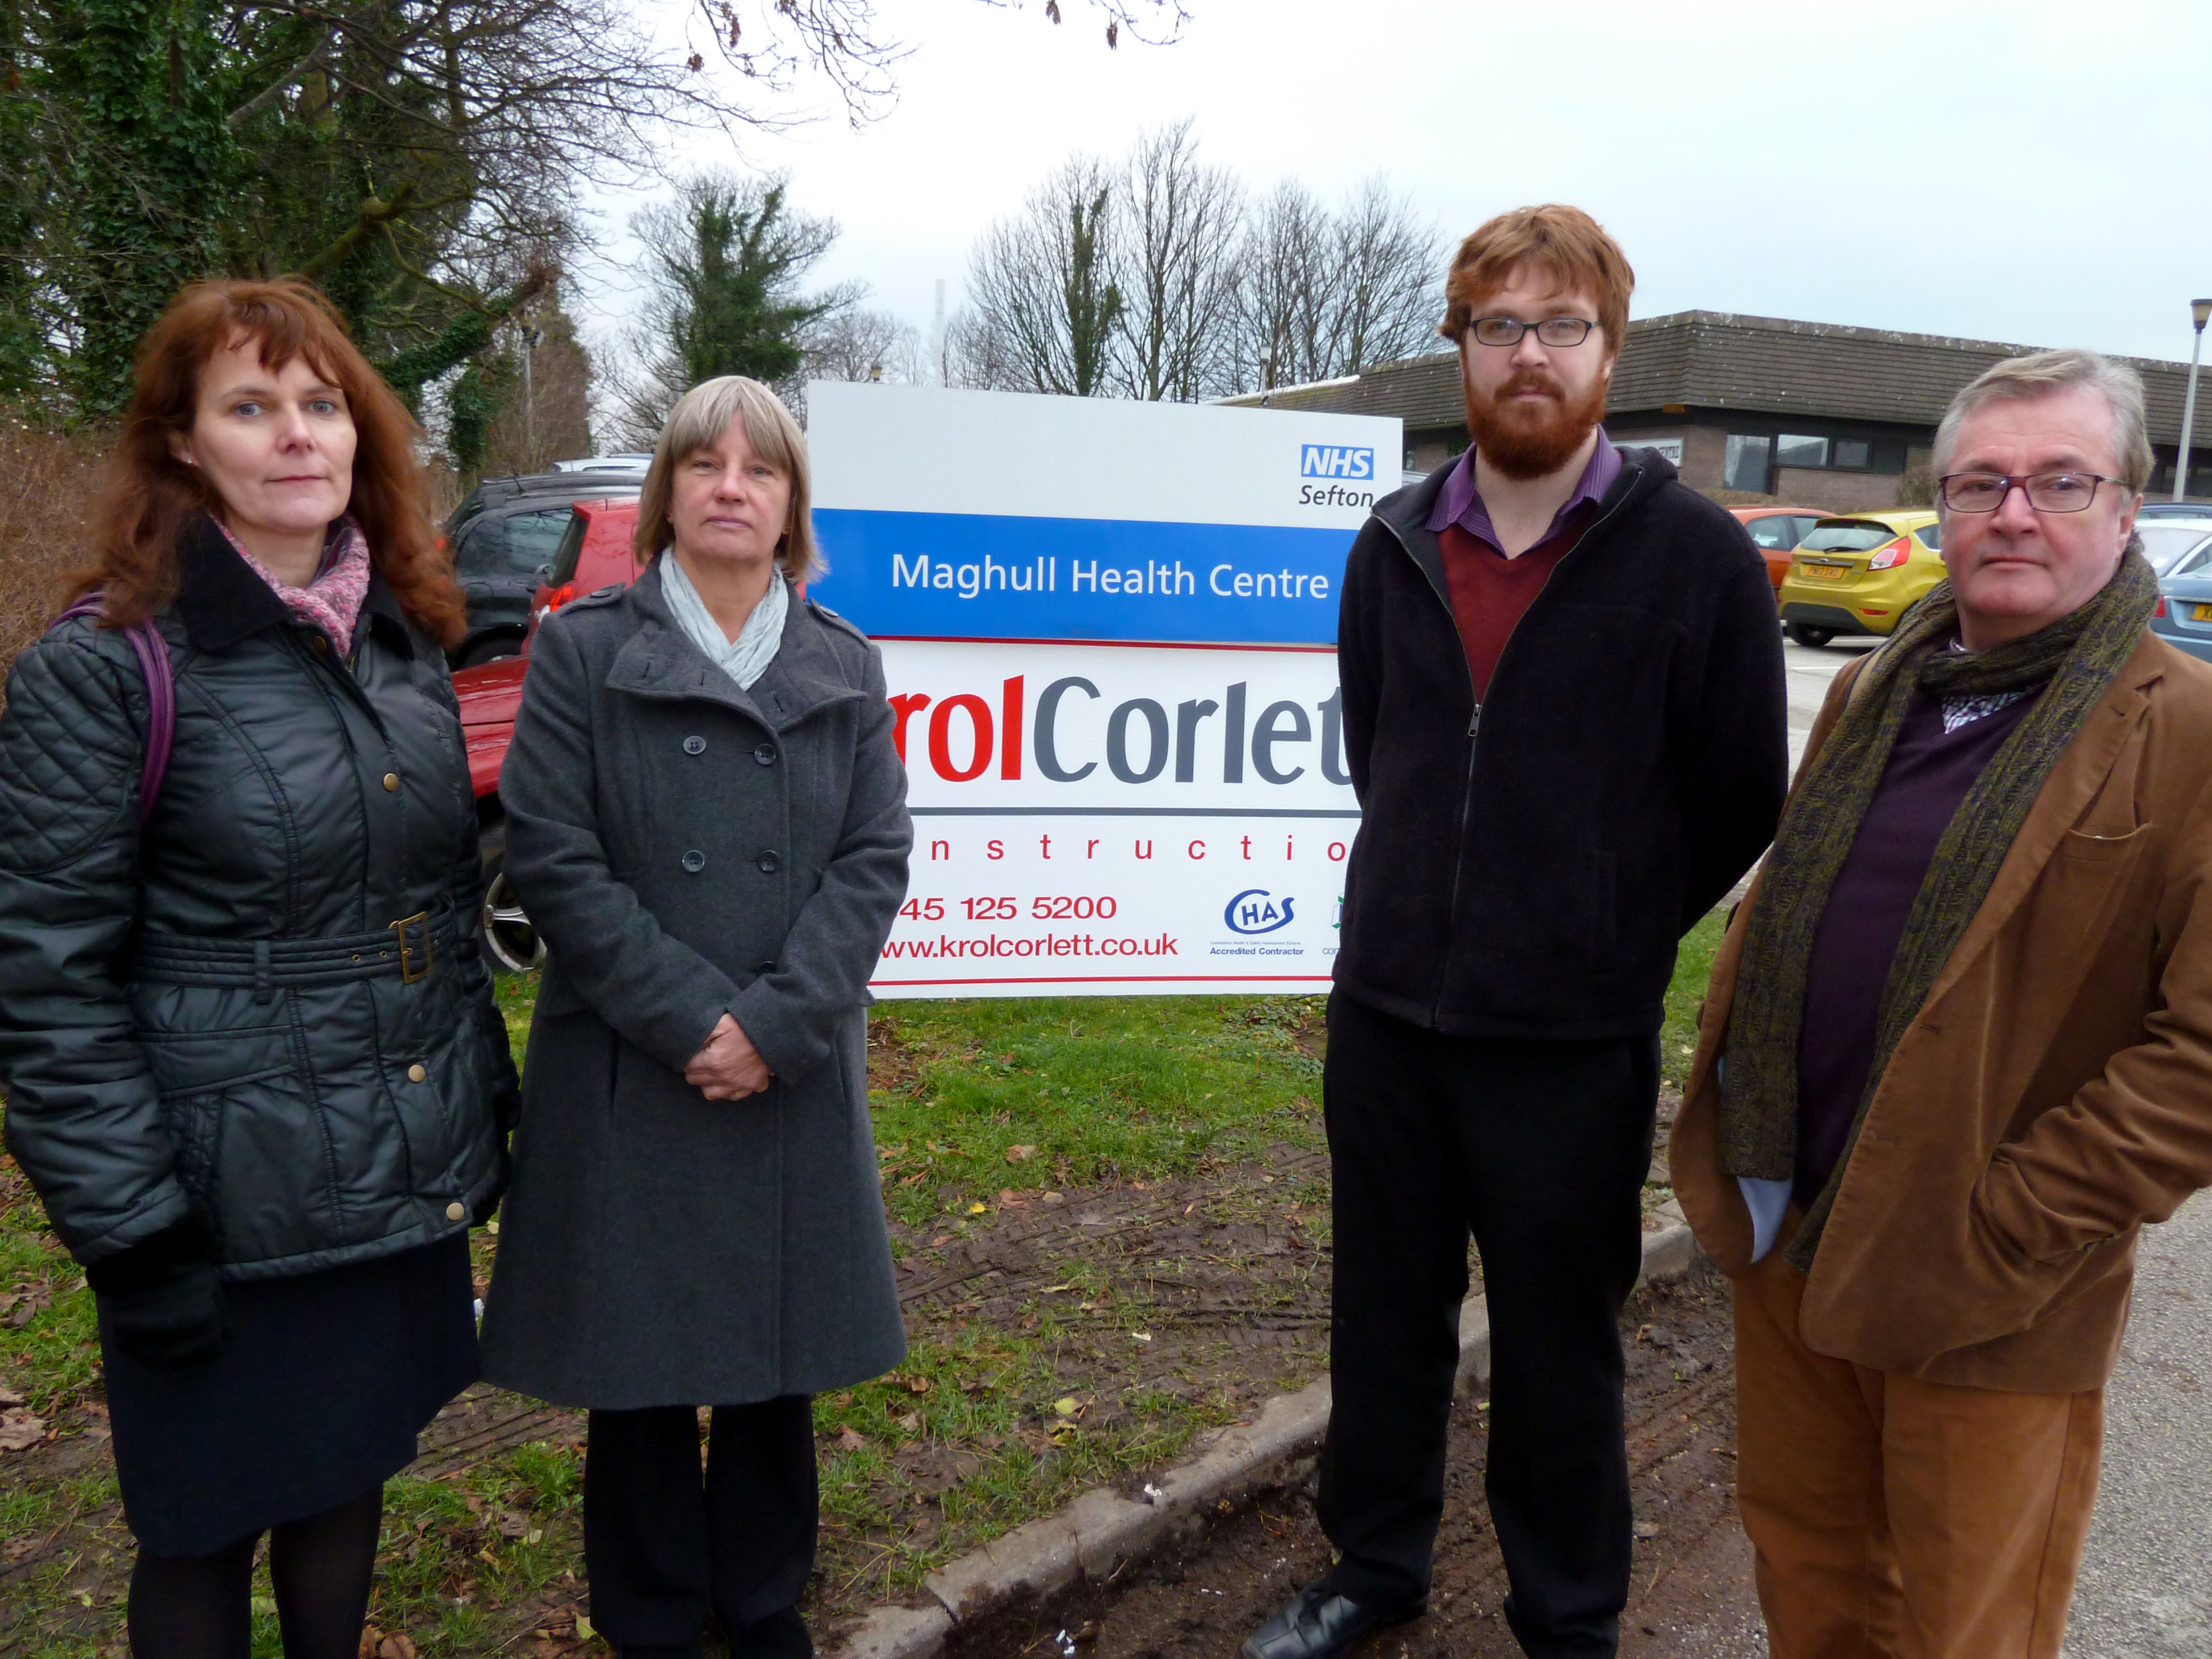 Maghull Labour councillors Lynn Gatherer and Patrick McKinley celebrate outside Maghull Health Centre where Maghull's community dentist is based.